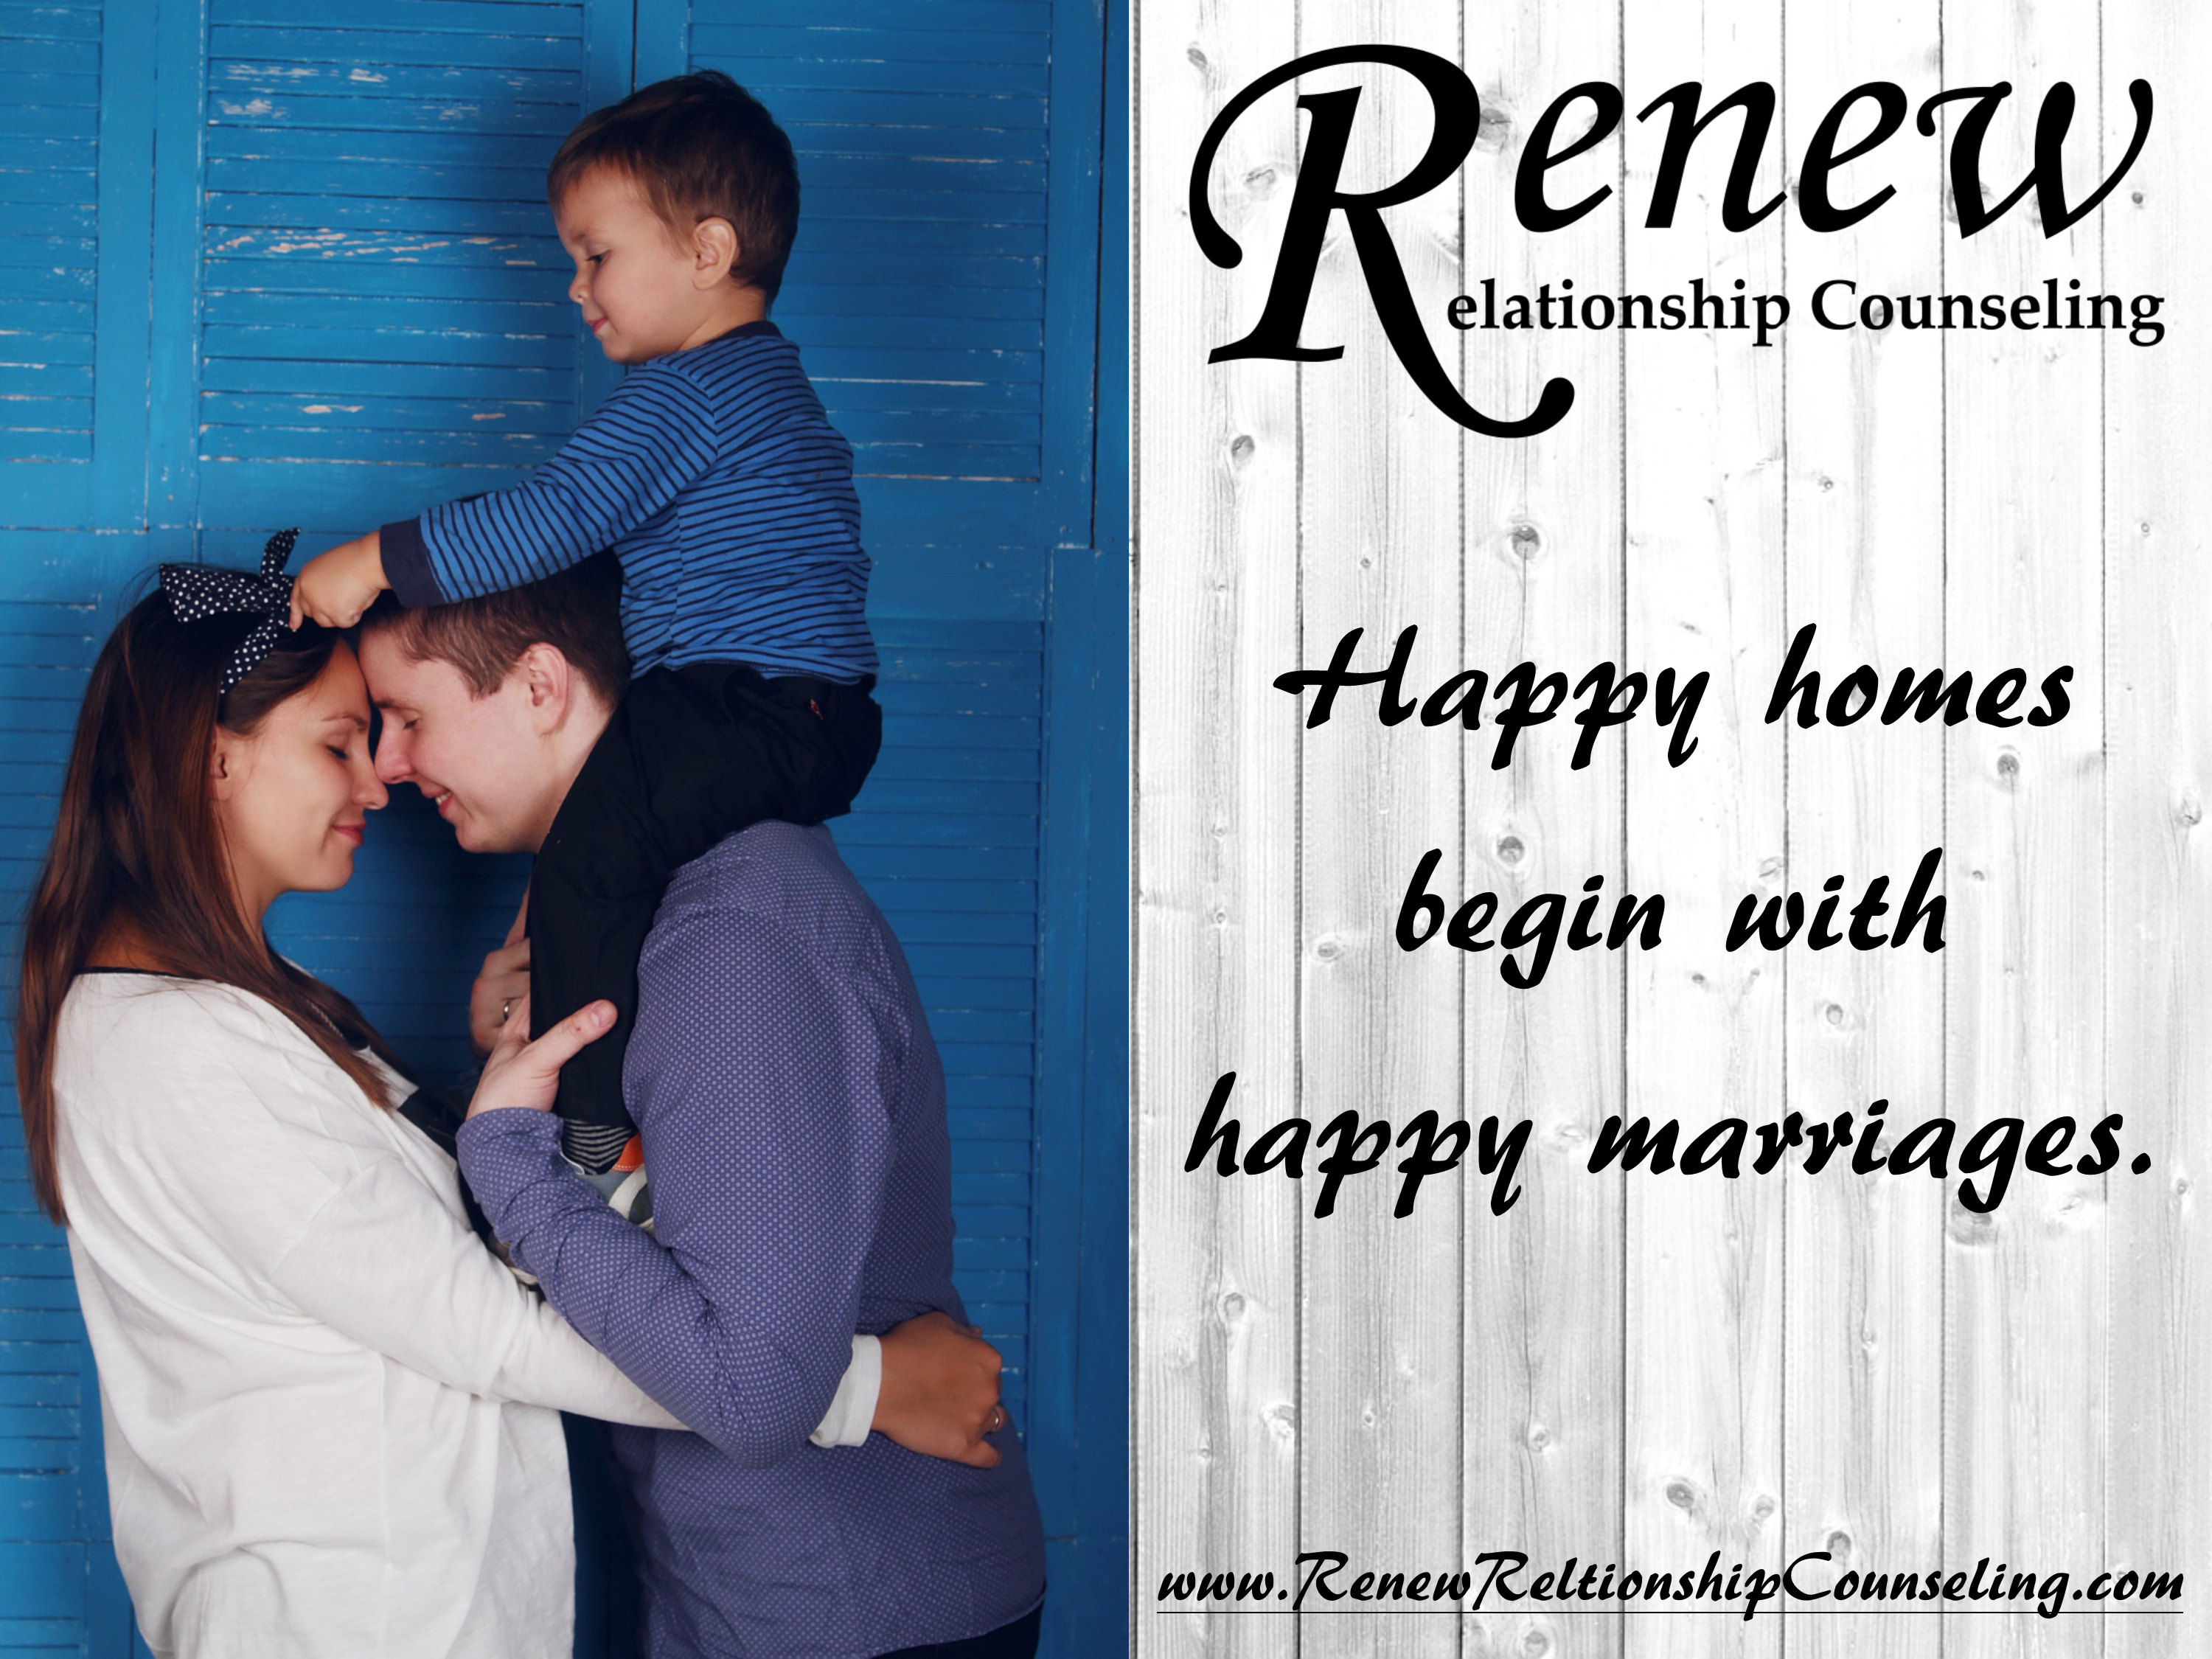 Happy homes begin with happy marriages Relationship